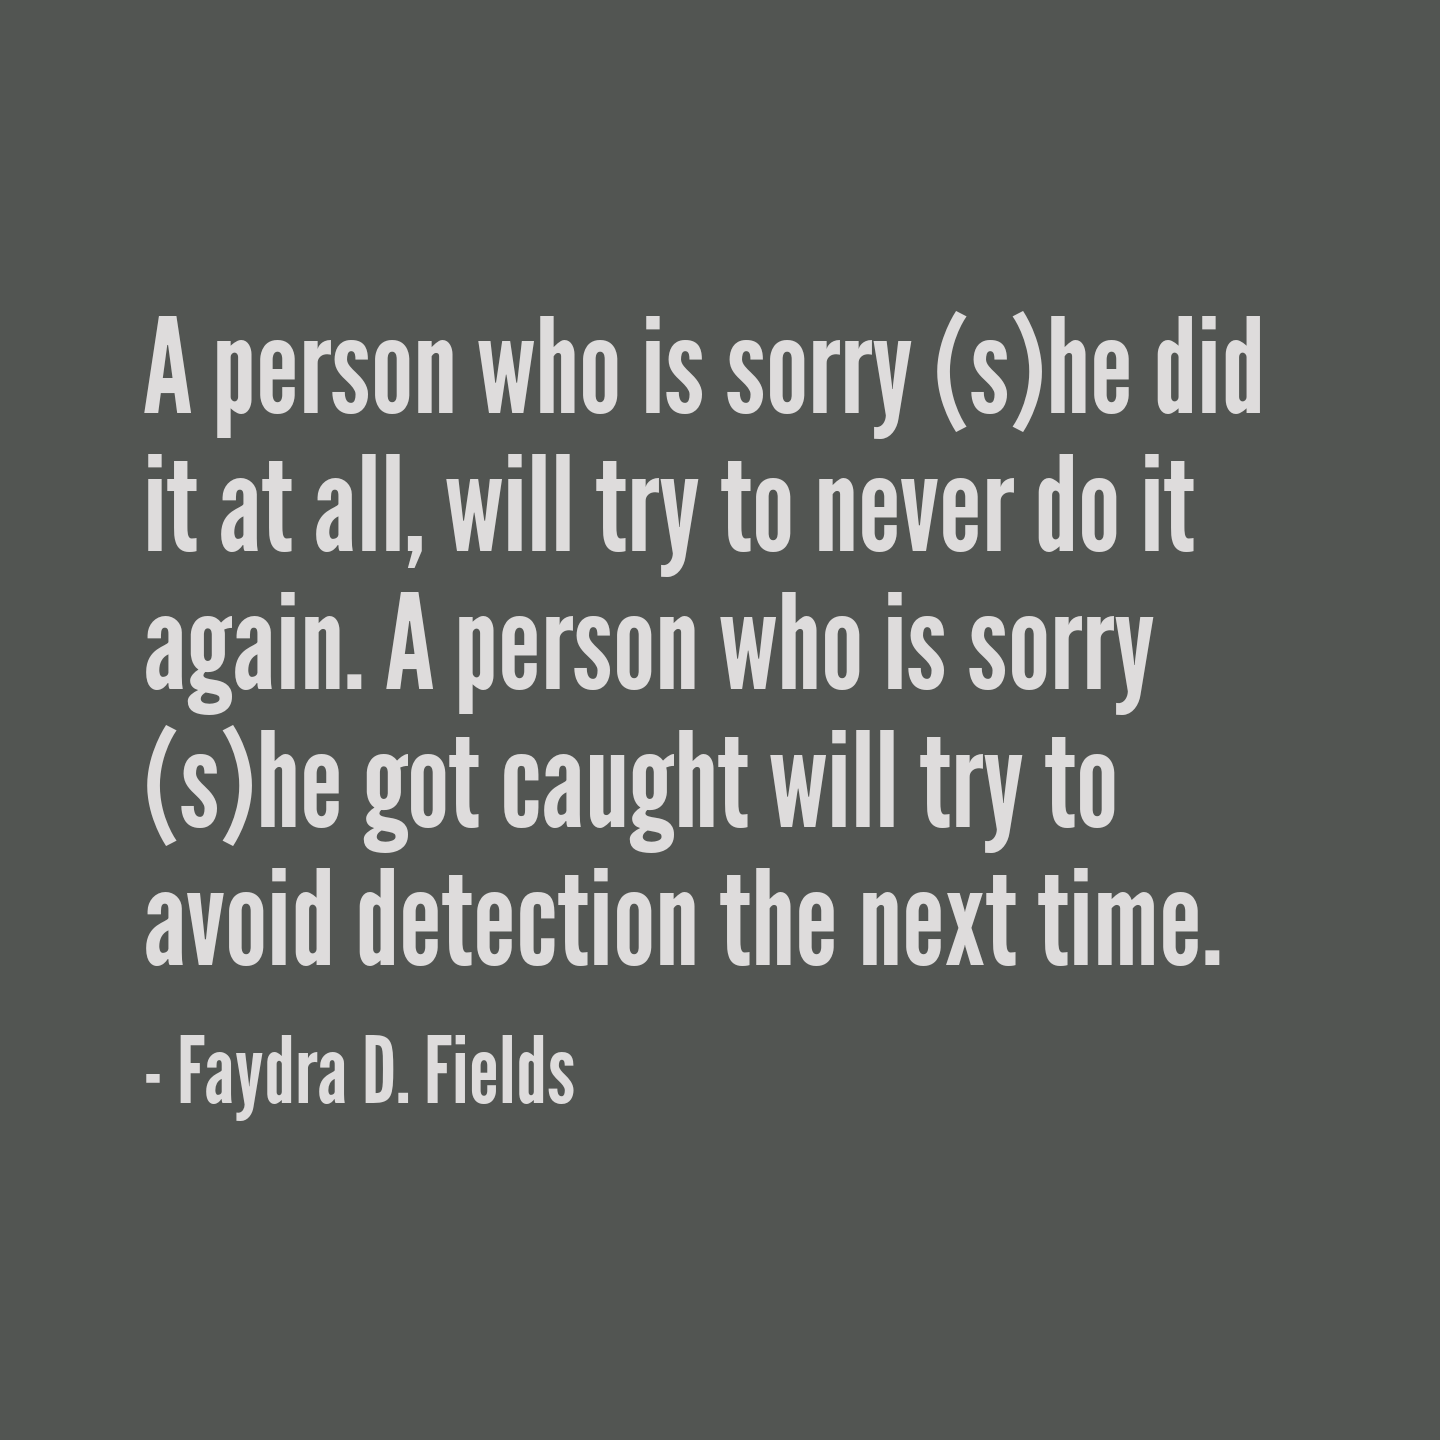 Maximum Axioms For Mental Acuity: A Person Who Is Sorry (s)he Did It At All, Will Try To Never Do It Again. A Person Who Is Sorry (s)he Got Caught Will Try To Avoid Detection The Next Time. - Faydra D. Fields